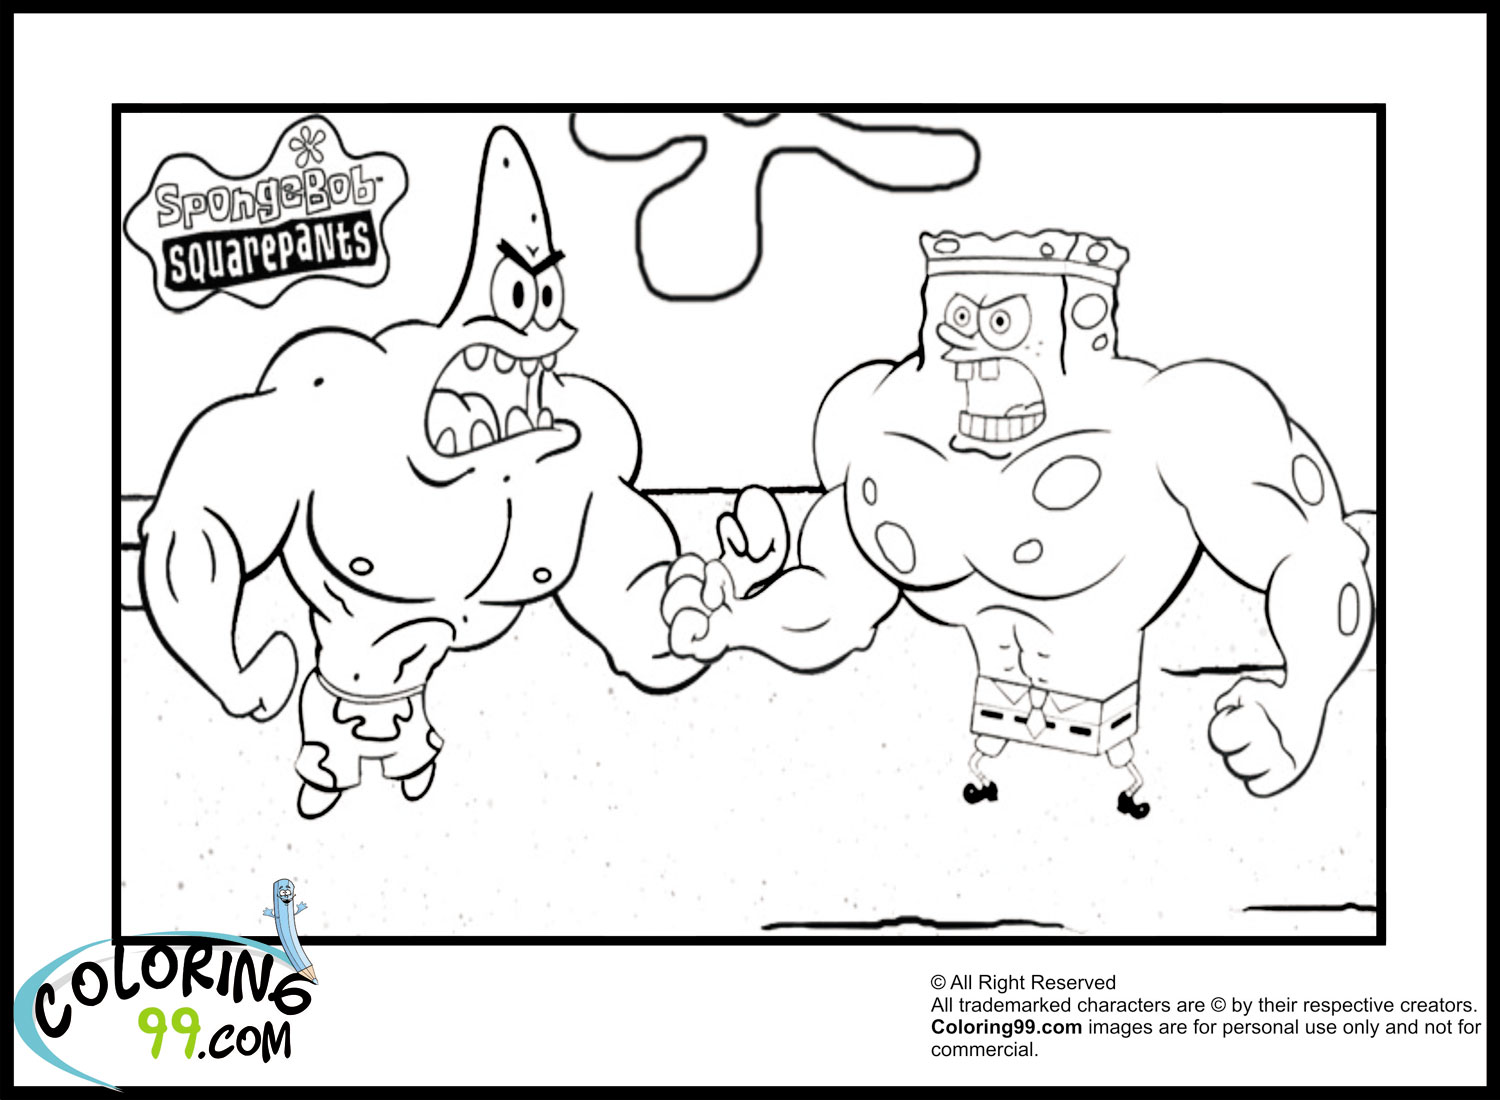 coloring pages of sopngebob - photo #46